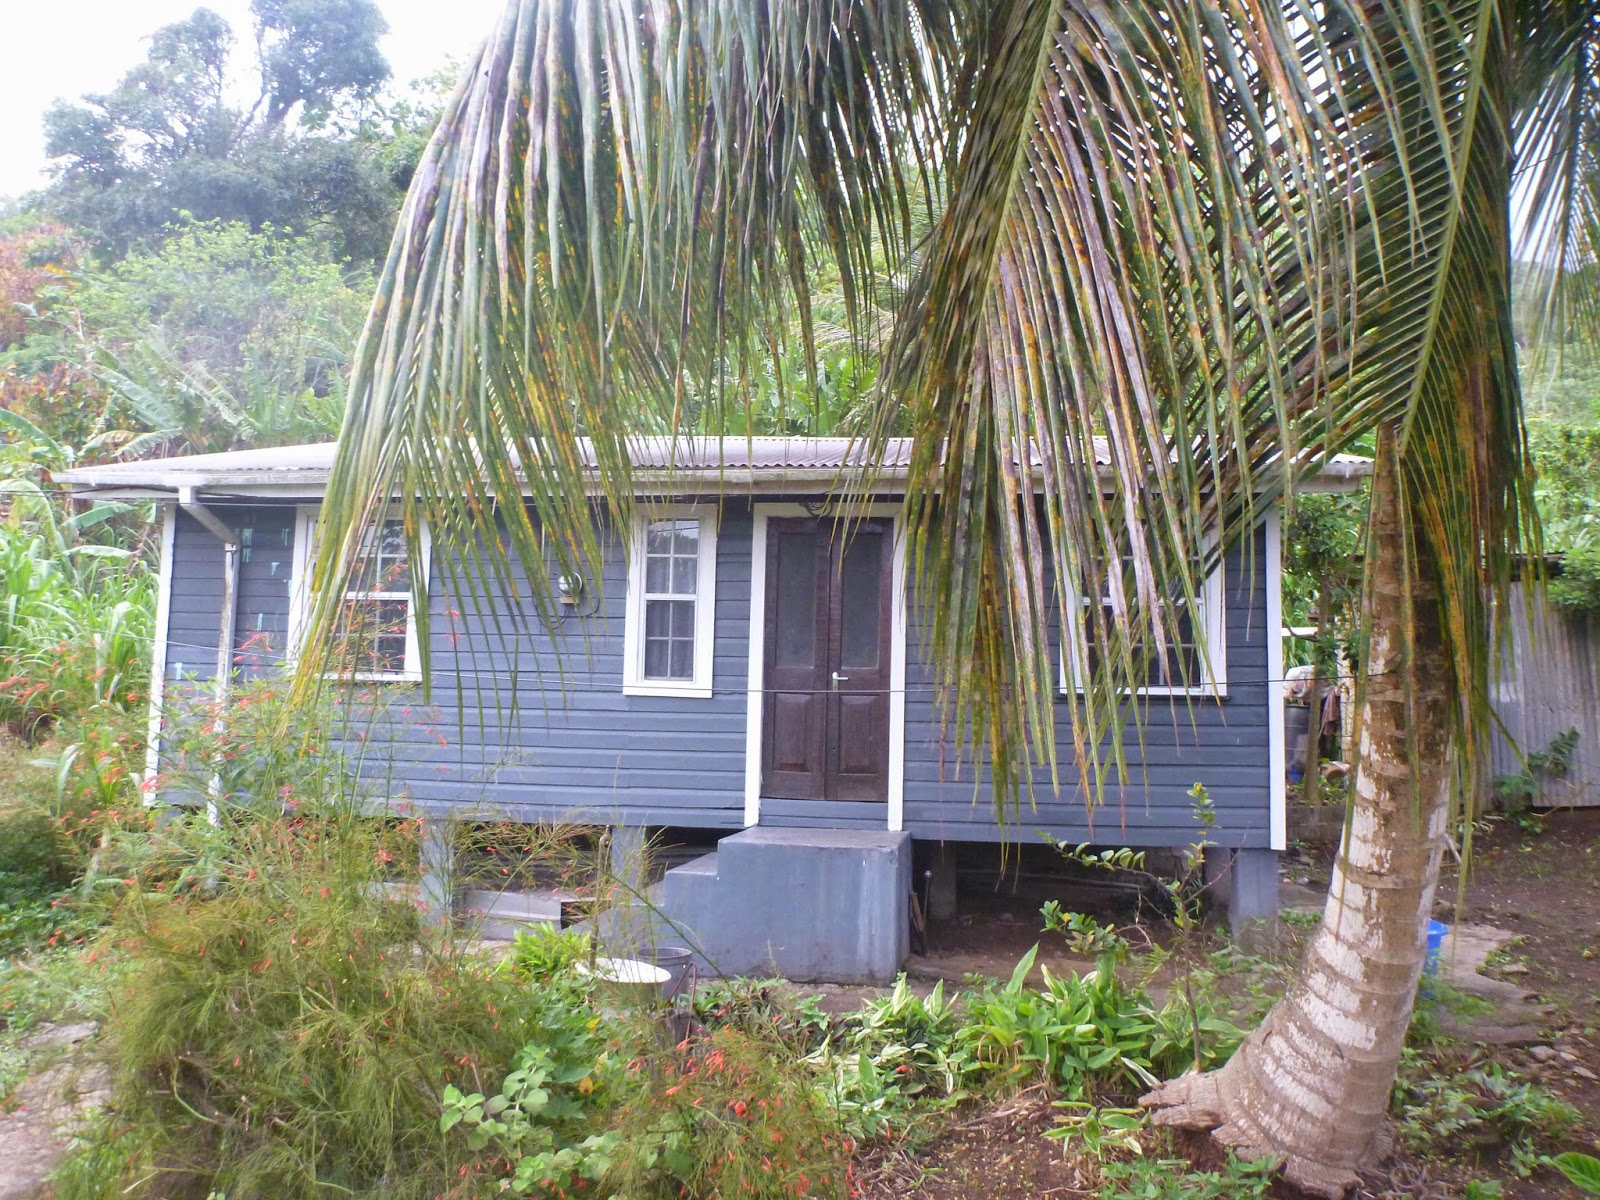 Local wooden home, Bellevue, Grenada